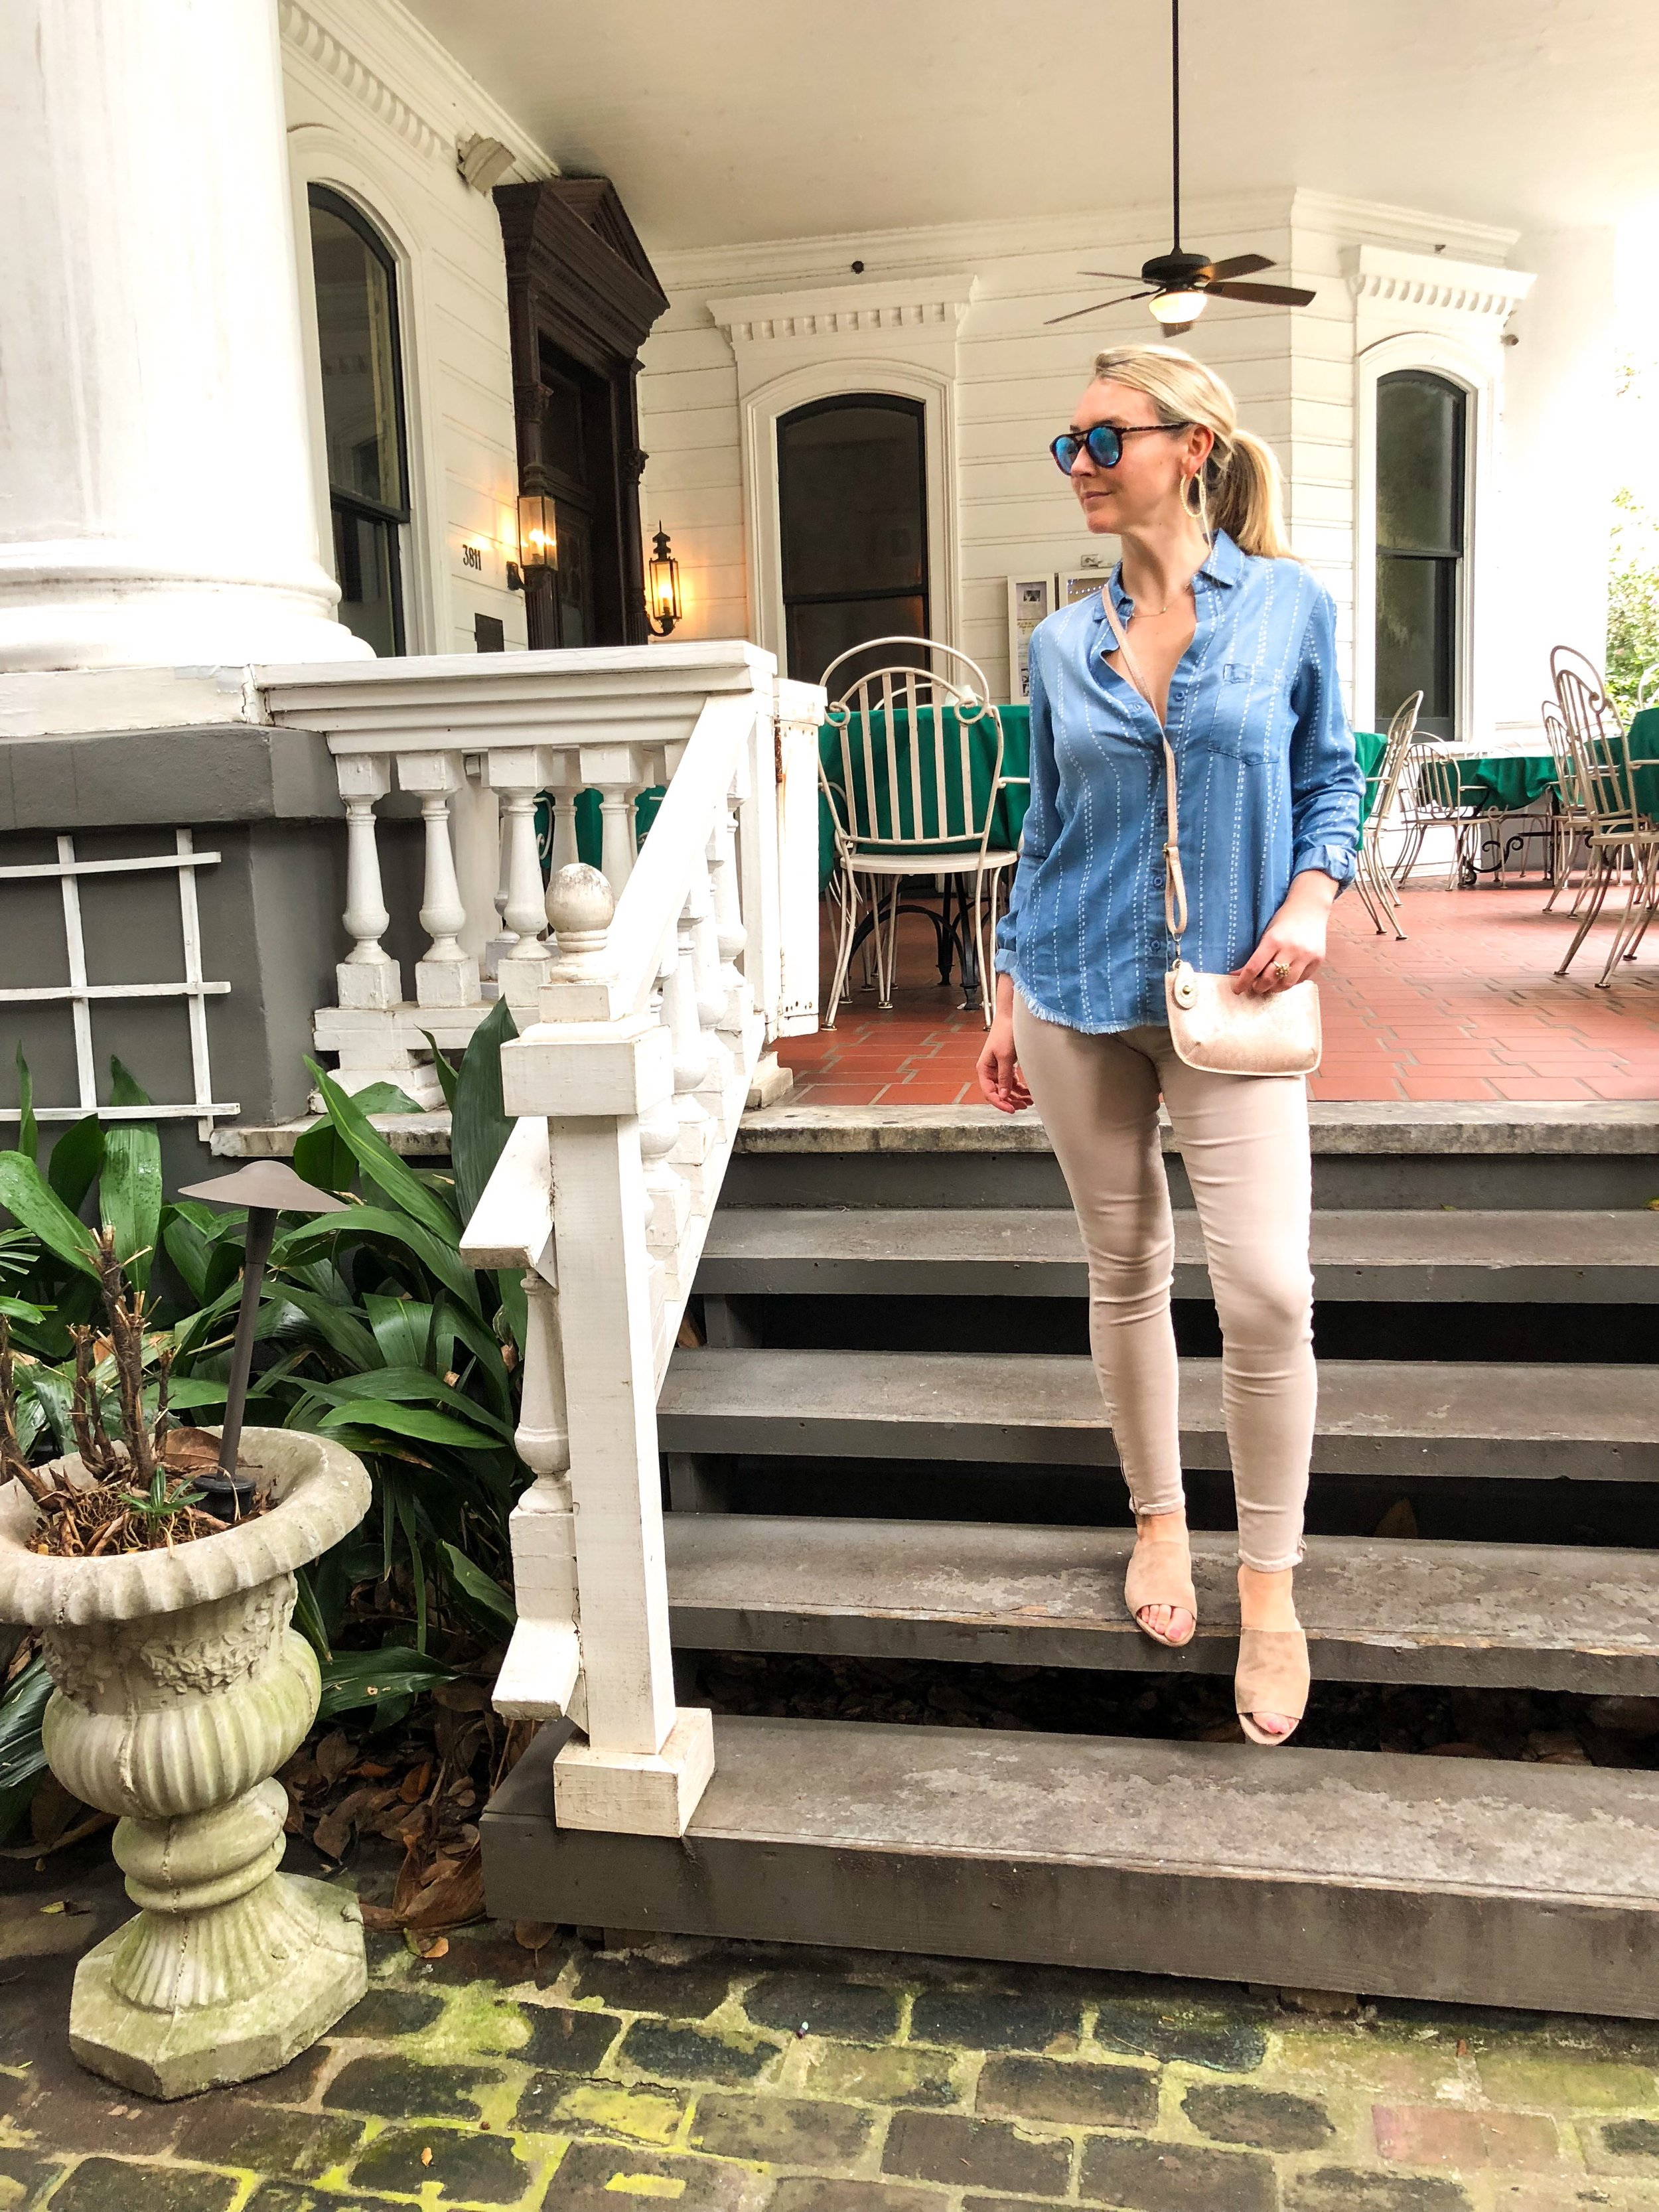 Second Look - Fidelity jeans + Button Down + Flats